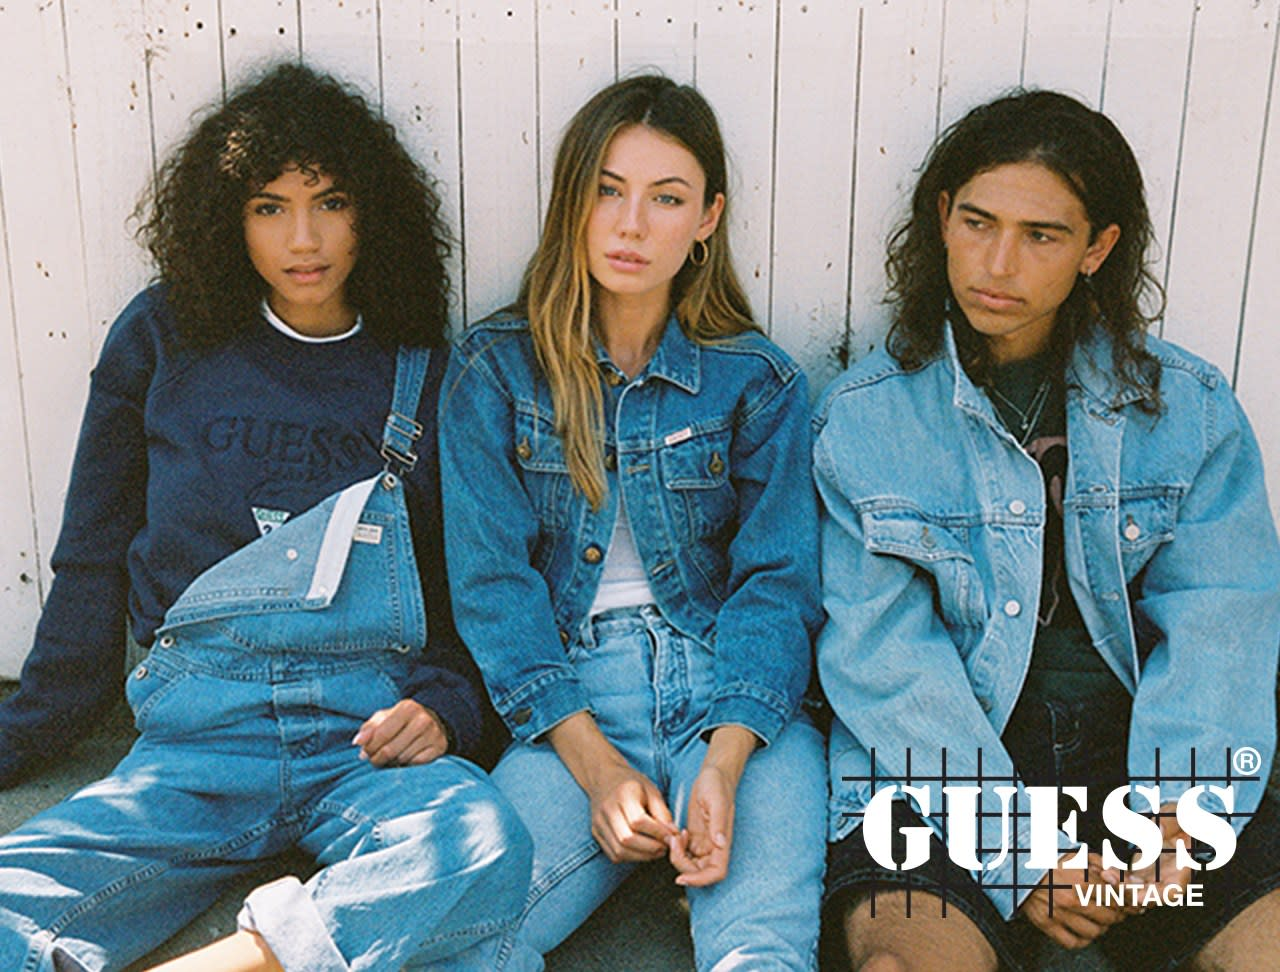 GUESS USA Vintage